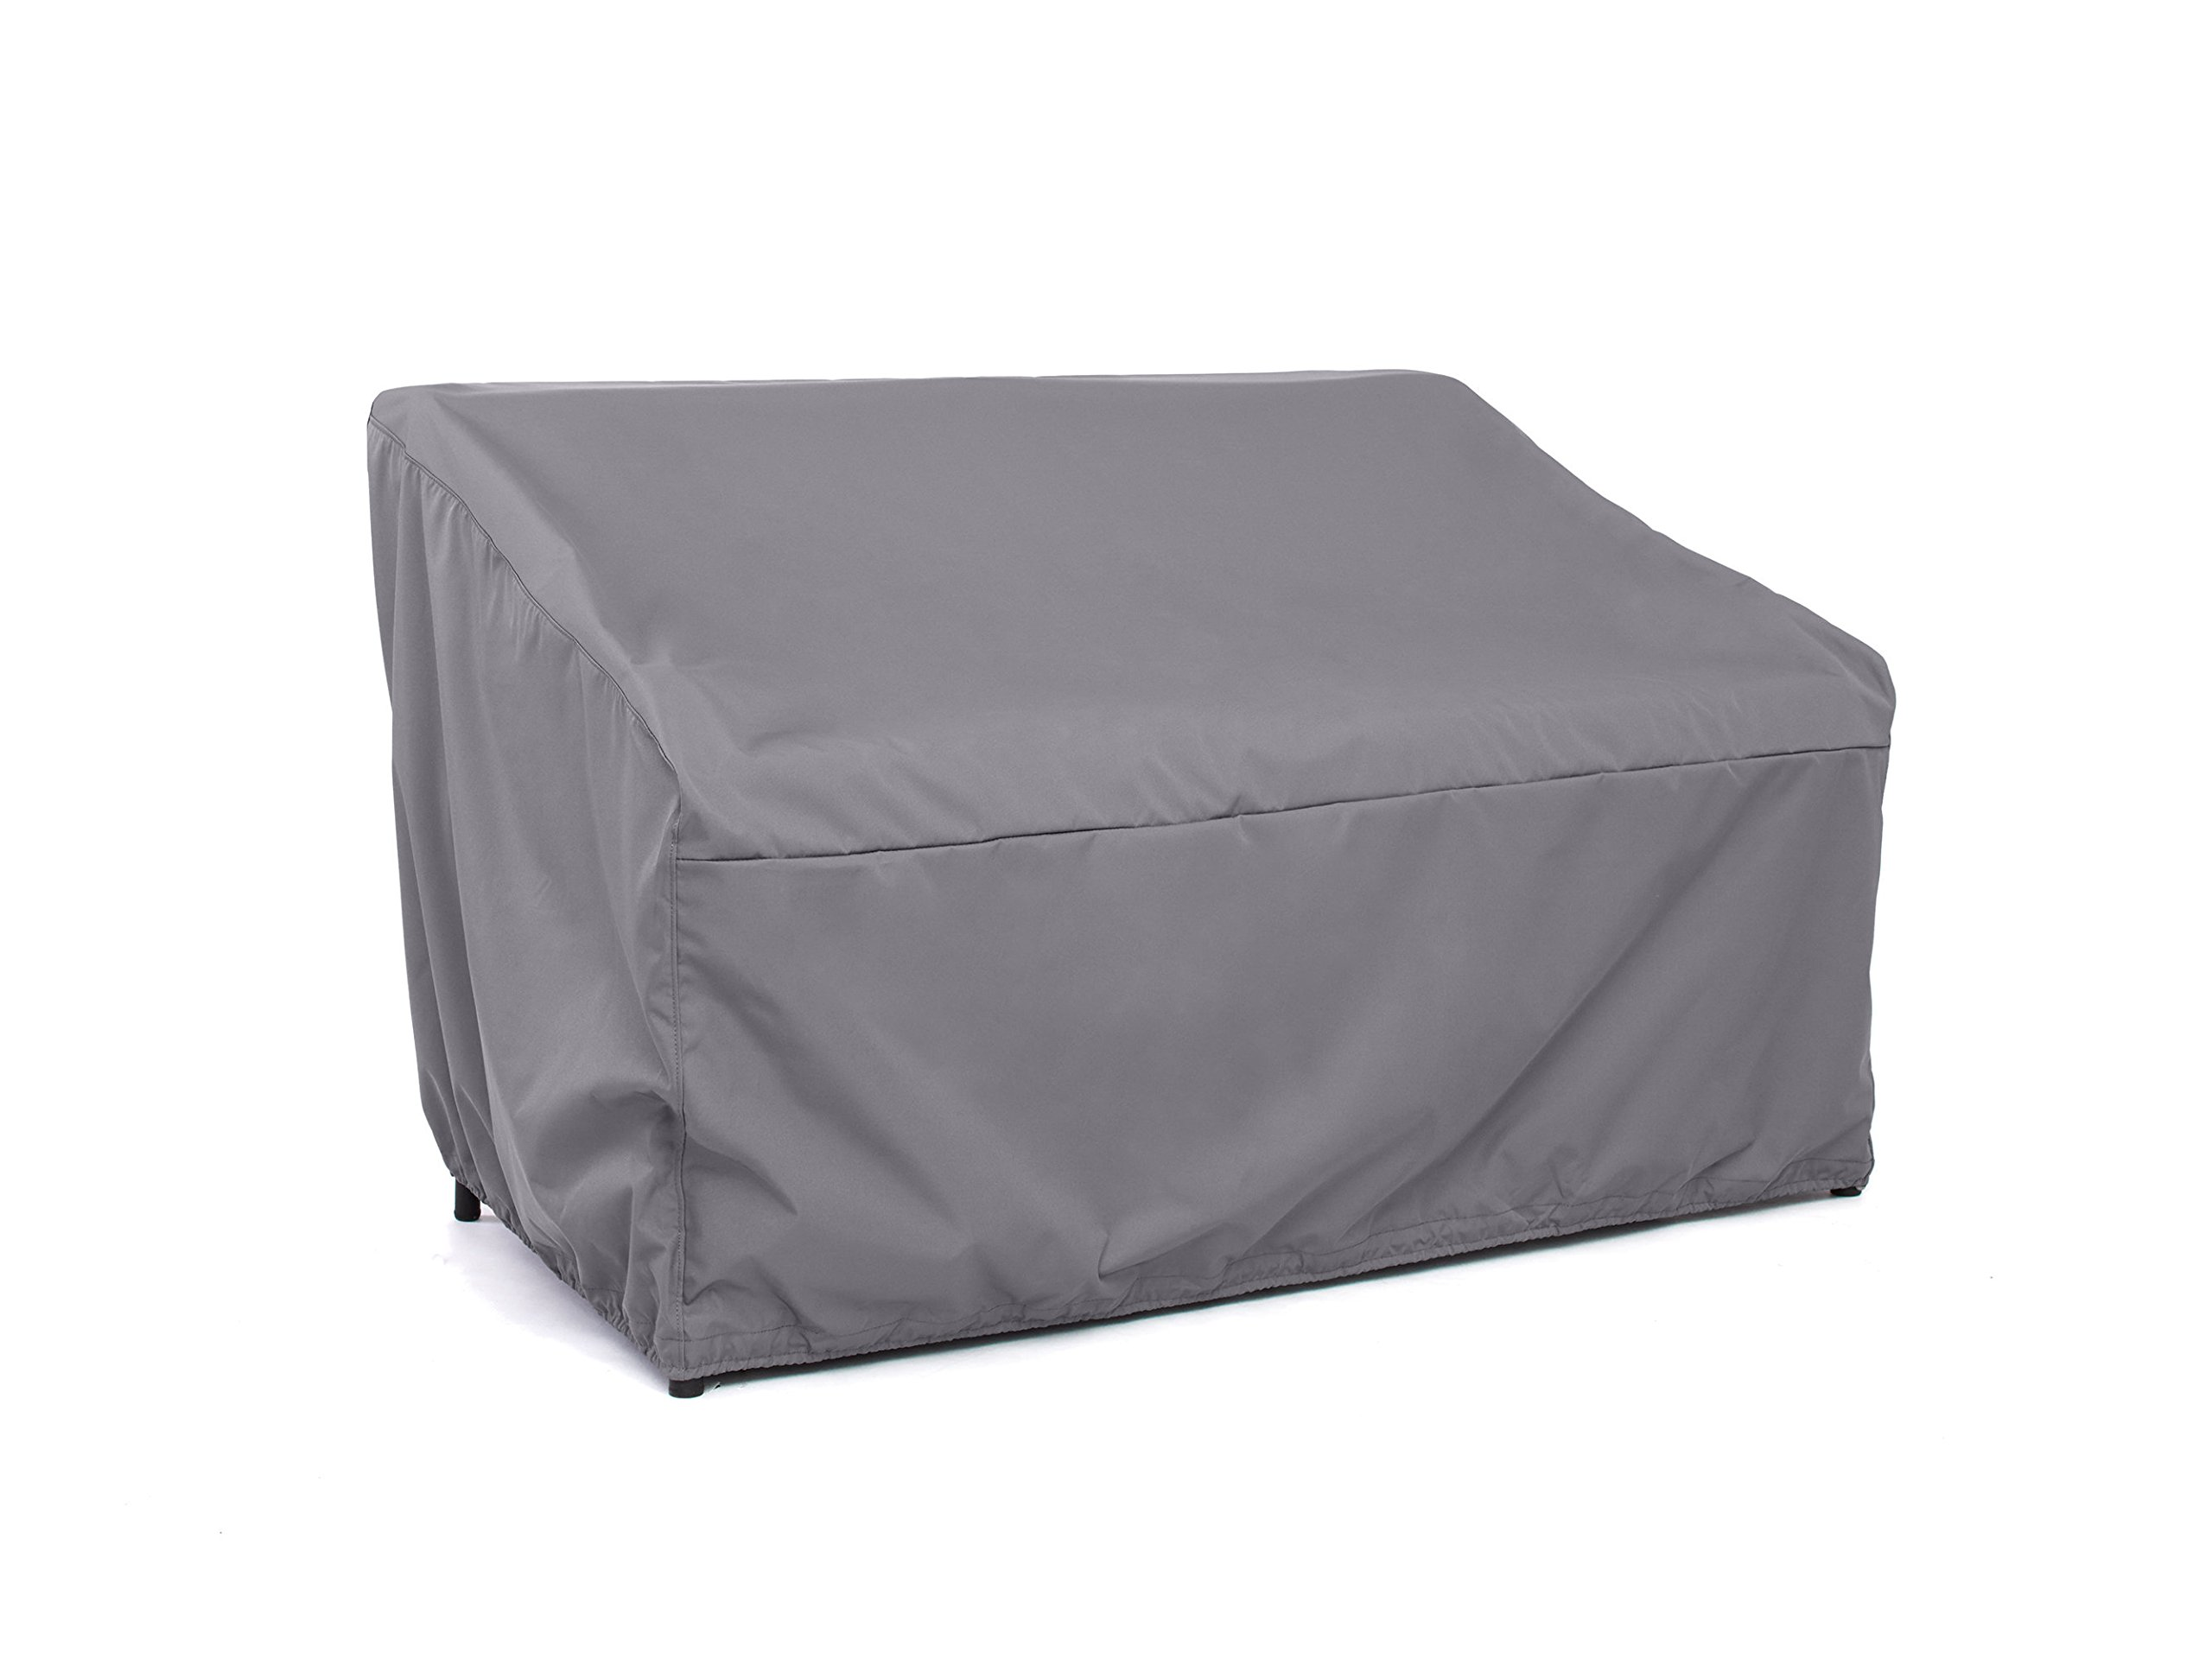 Covermates - Outdoor Patio Sofa Cover - 94W x 40D x 40H - Elite Collection - 3 YR Warranty - Year Around Protection - Charcoal by Covermates